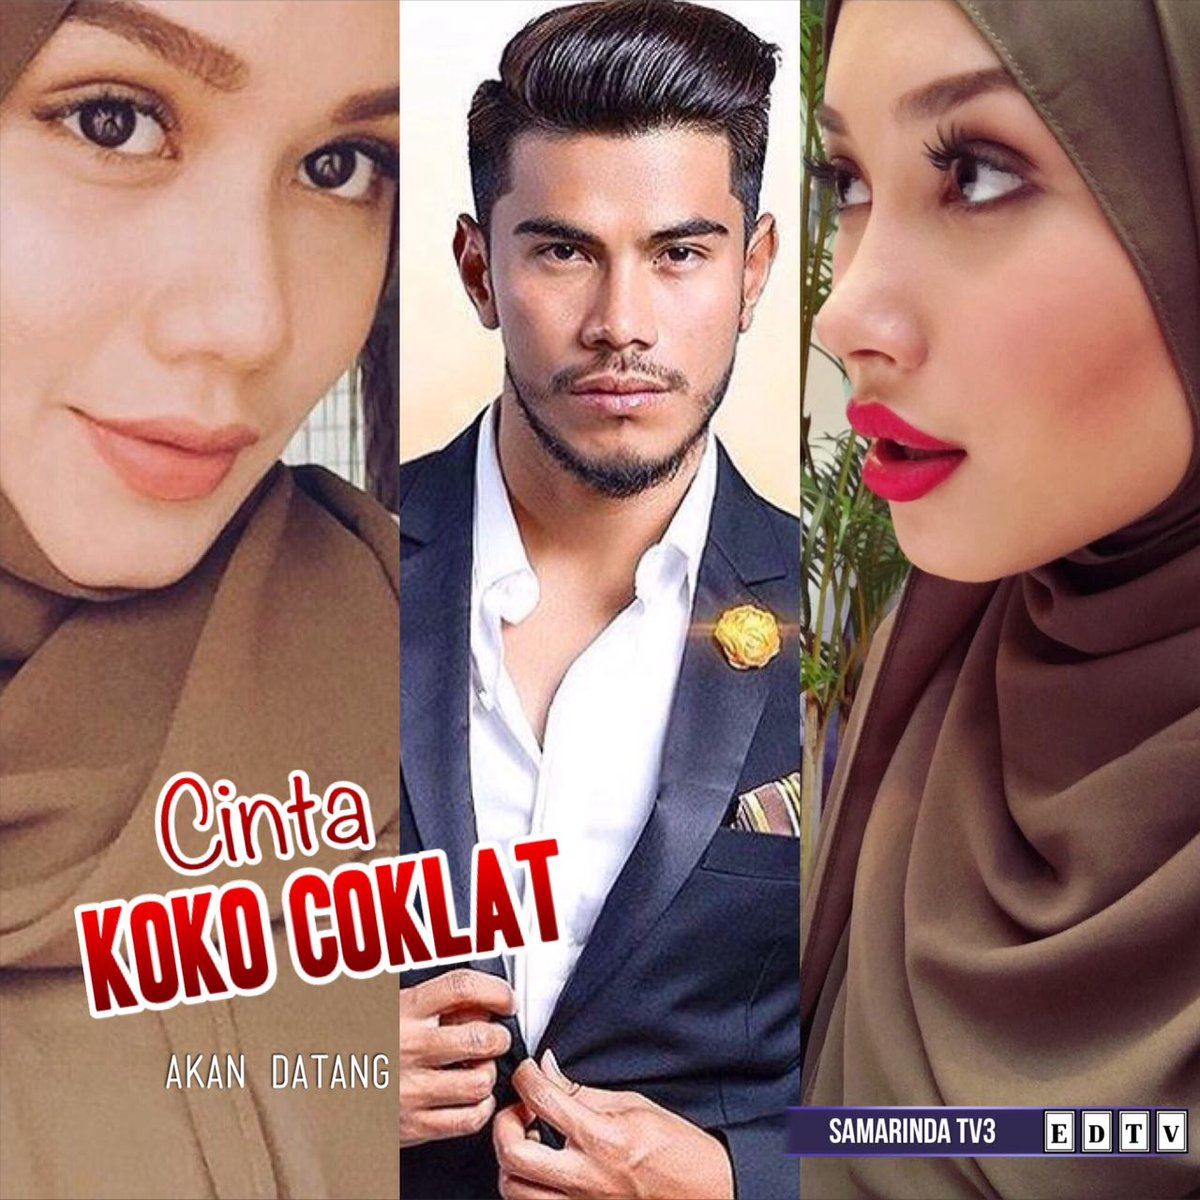 Image result for Cinta Koko Coklat (TV3)